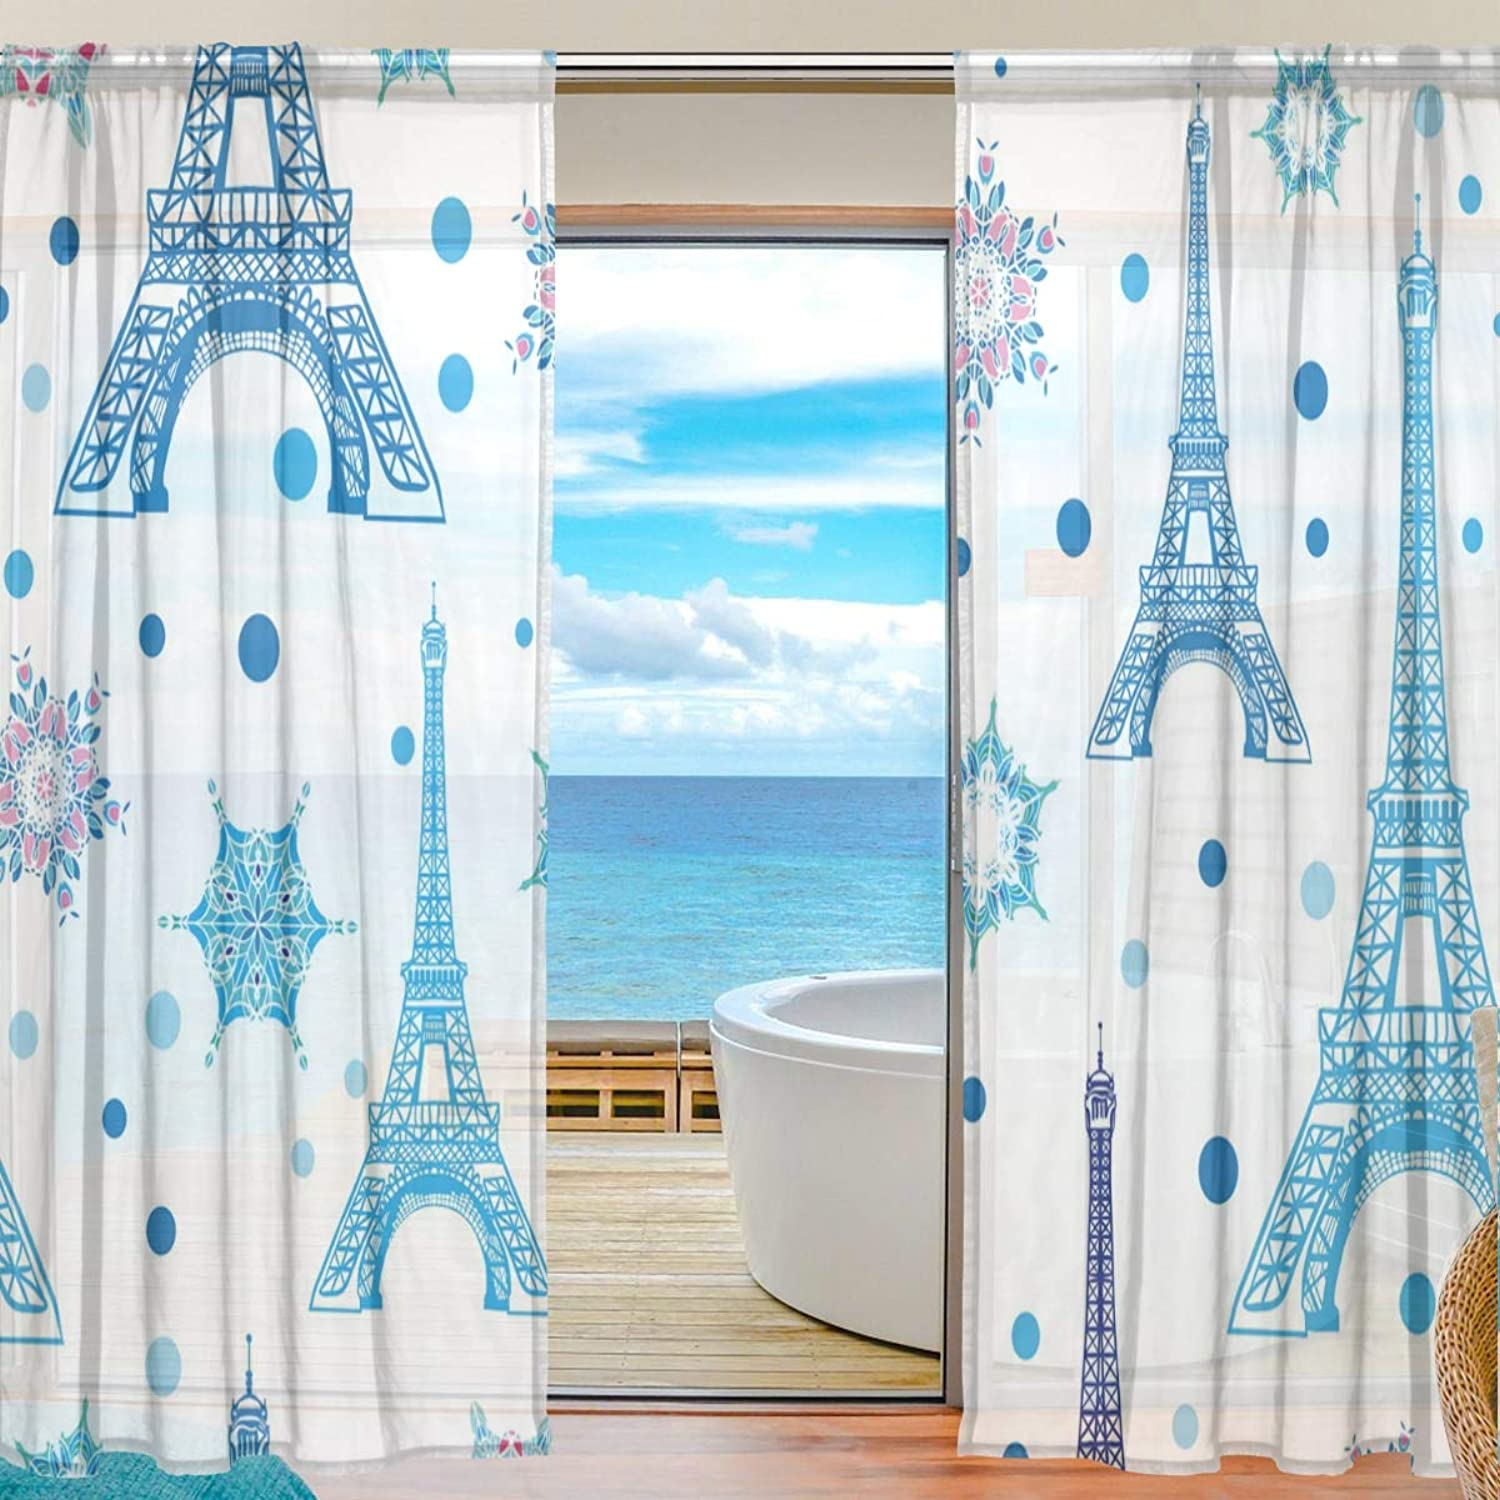 Christmas Eiffel Tower 2 Pieces Curtain Panel 55 x 78 inches for Bedroom Living Room